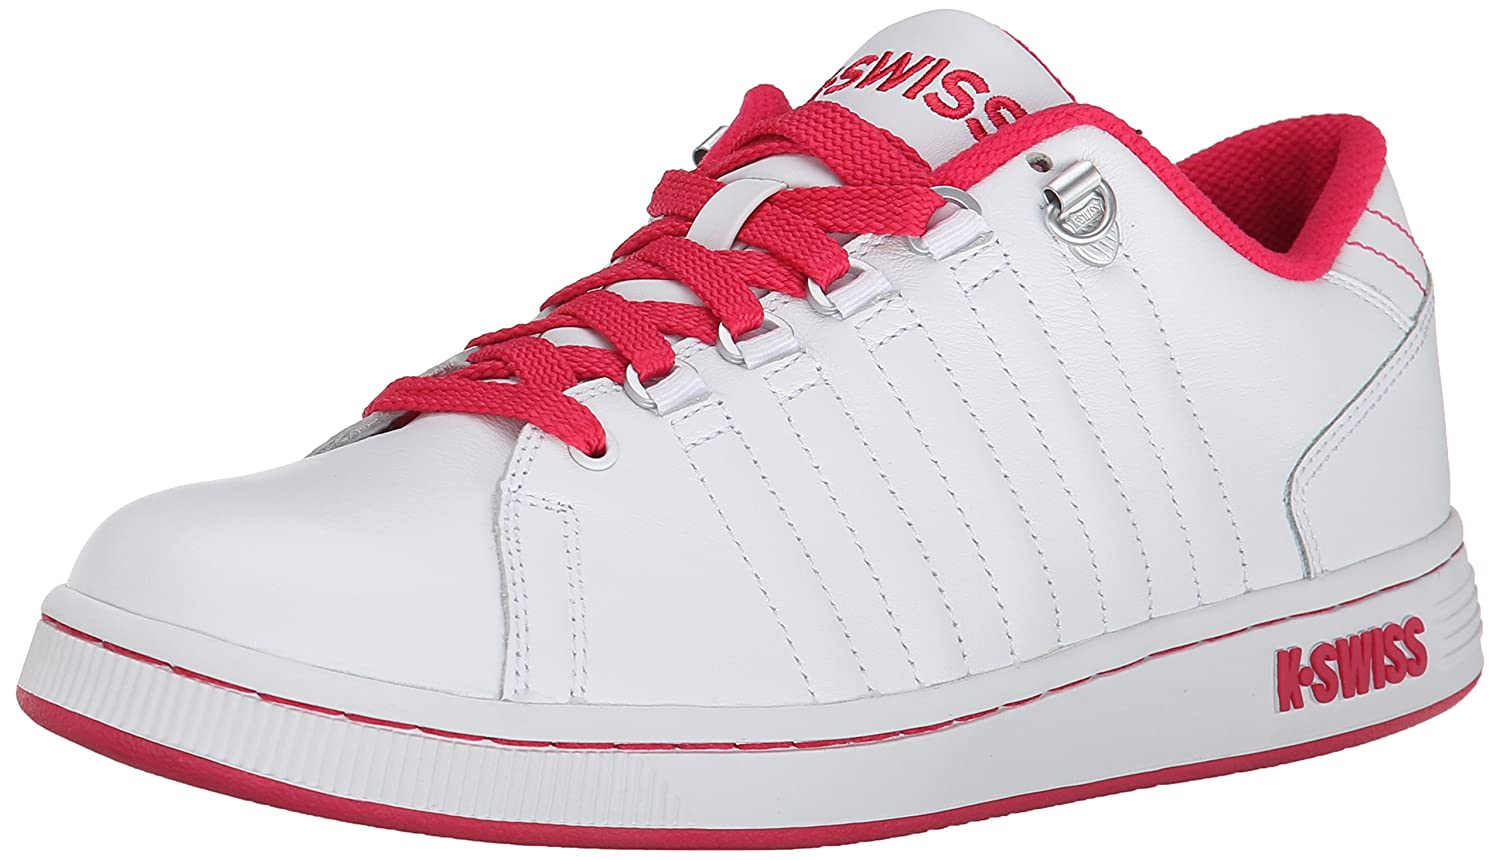 k swiss shoes european brands clothing